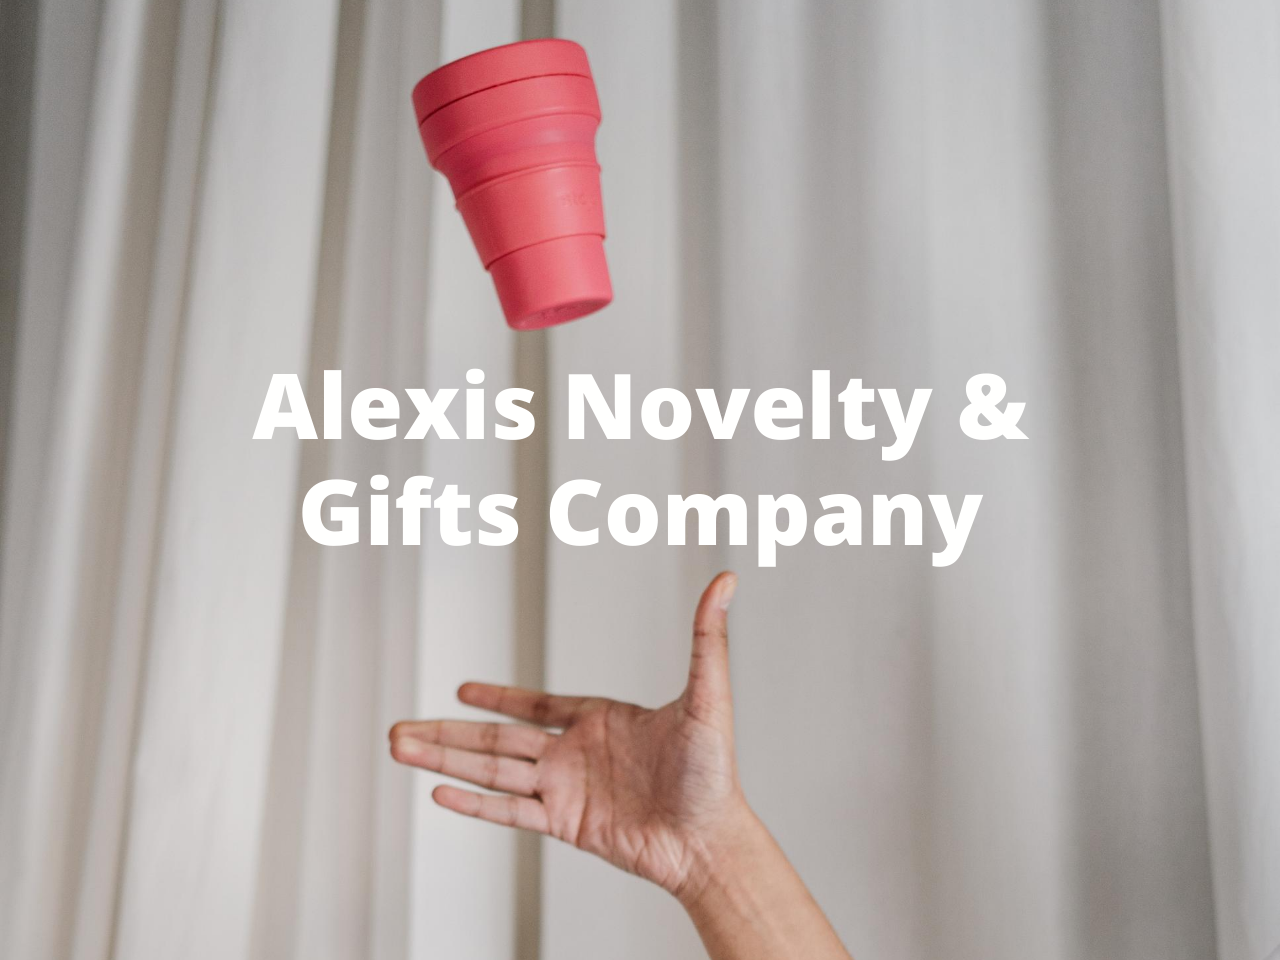 Alexis Novelty & Gifts Co